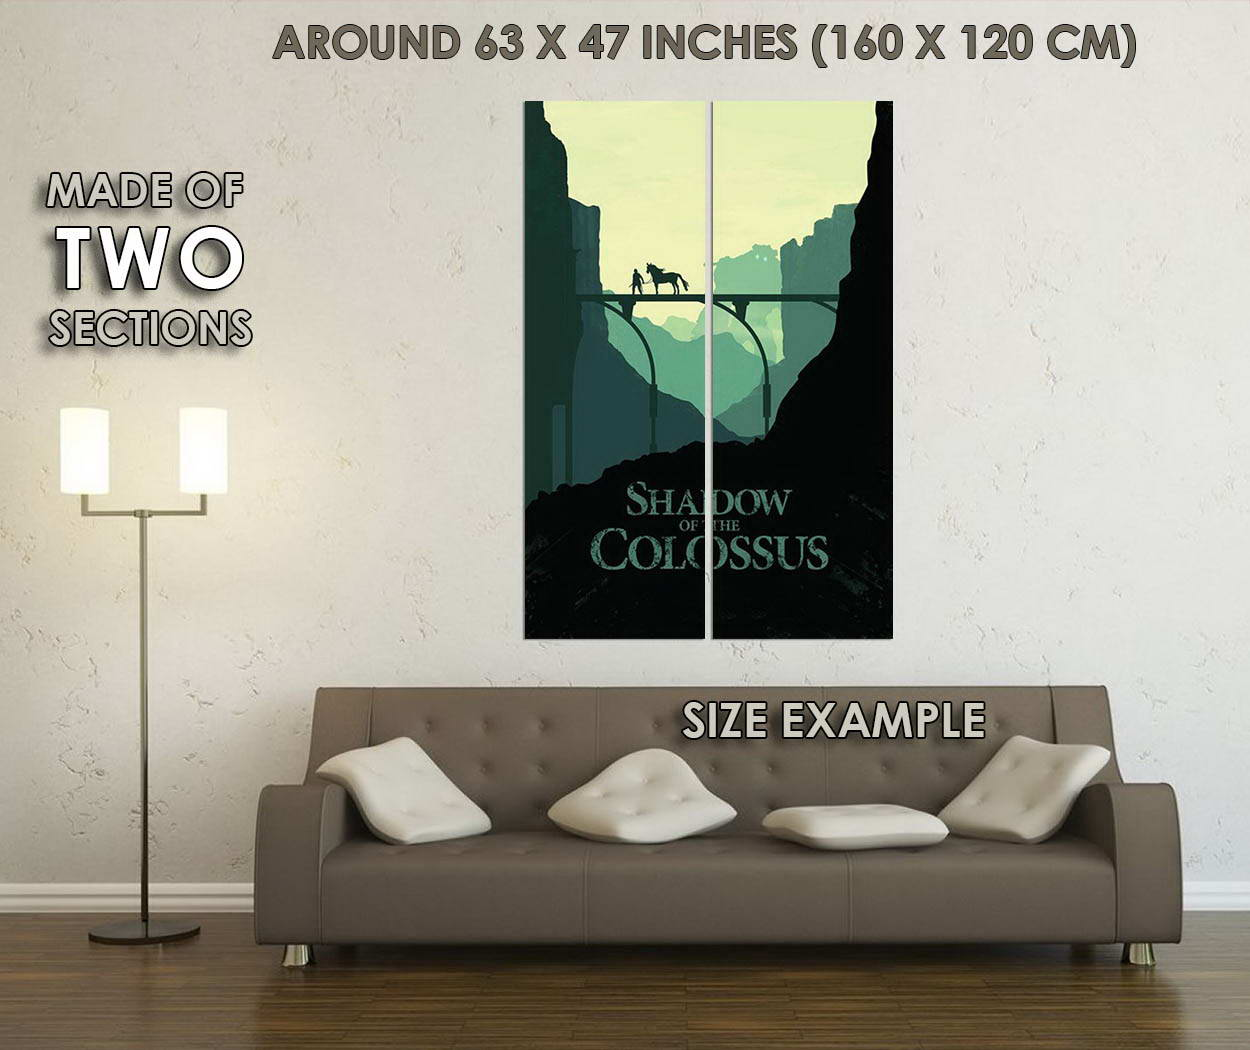 10786-Shadow-of-the-Colossus-Kolossale-Kinoversion-ICO-Art-LAMINATED-POSTER-CA thumbnail 6